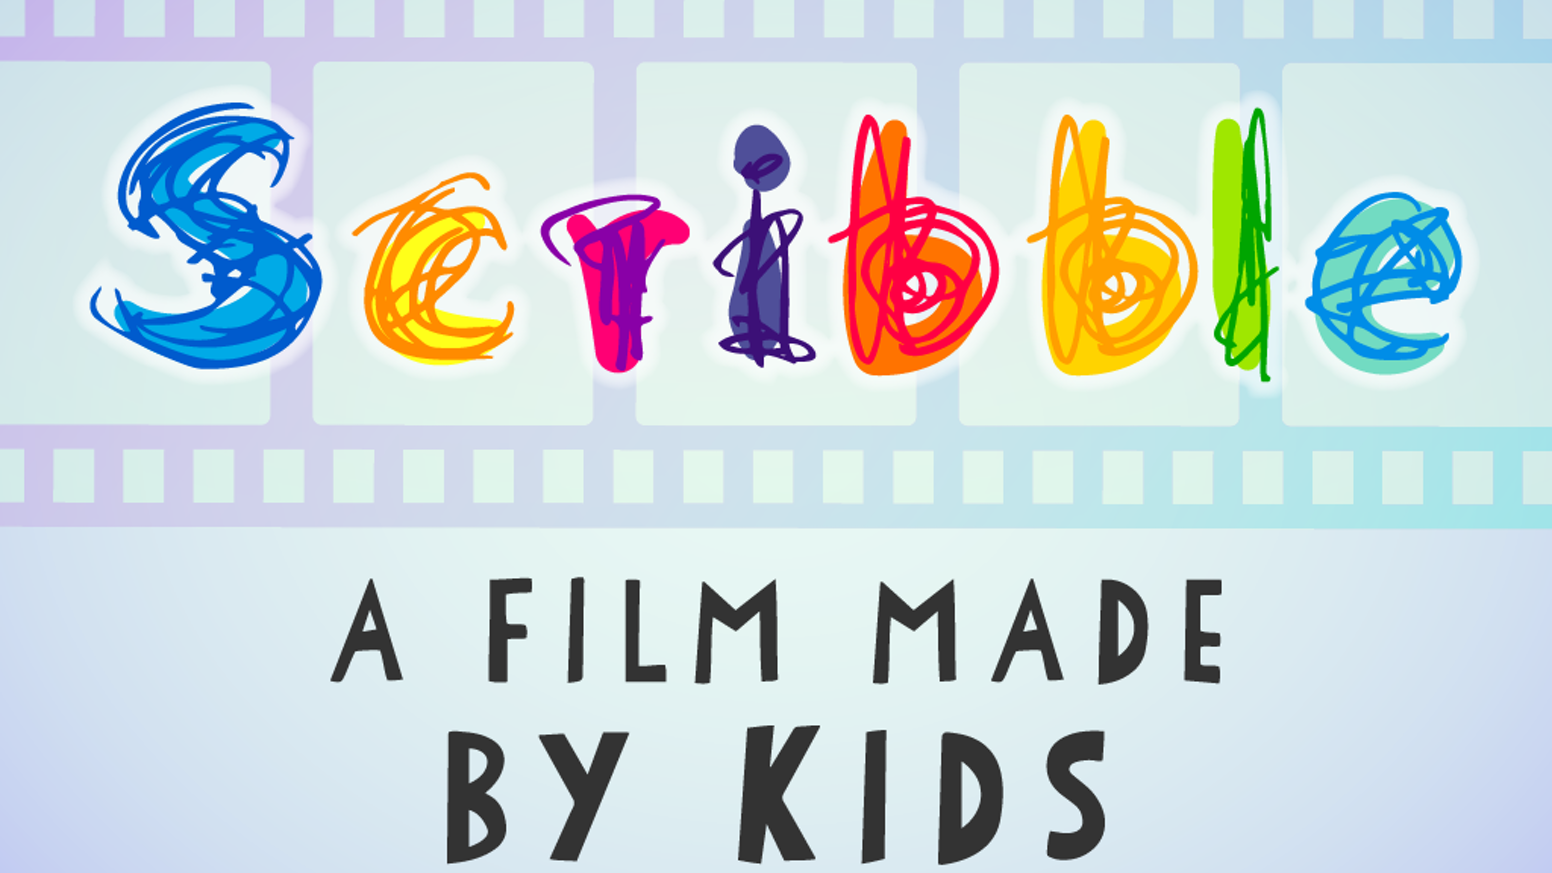 A short film, animated by kids directly on film. This helps them unleash their creativity and discover the arts of film and animation.